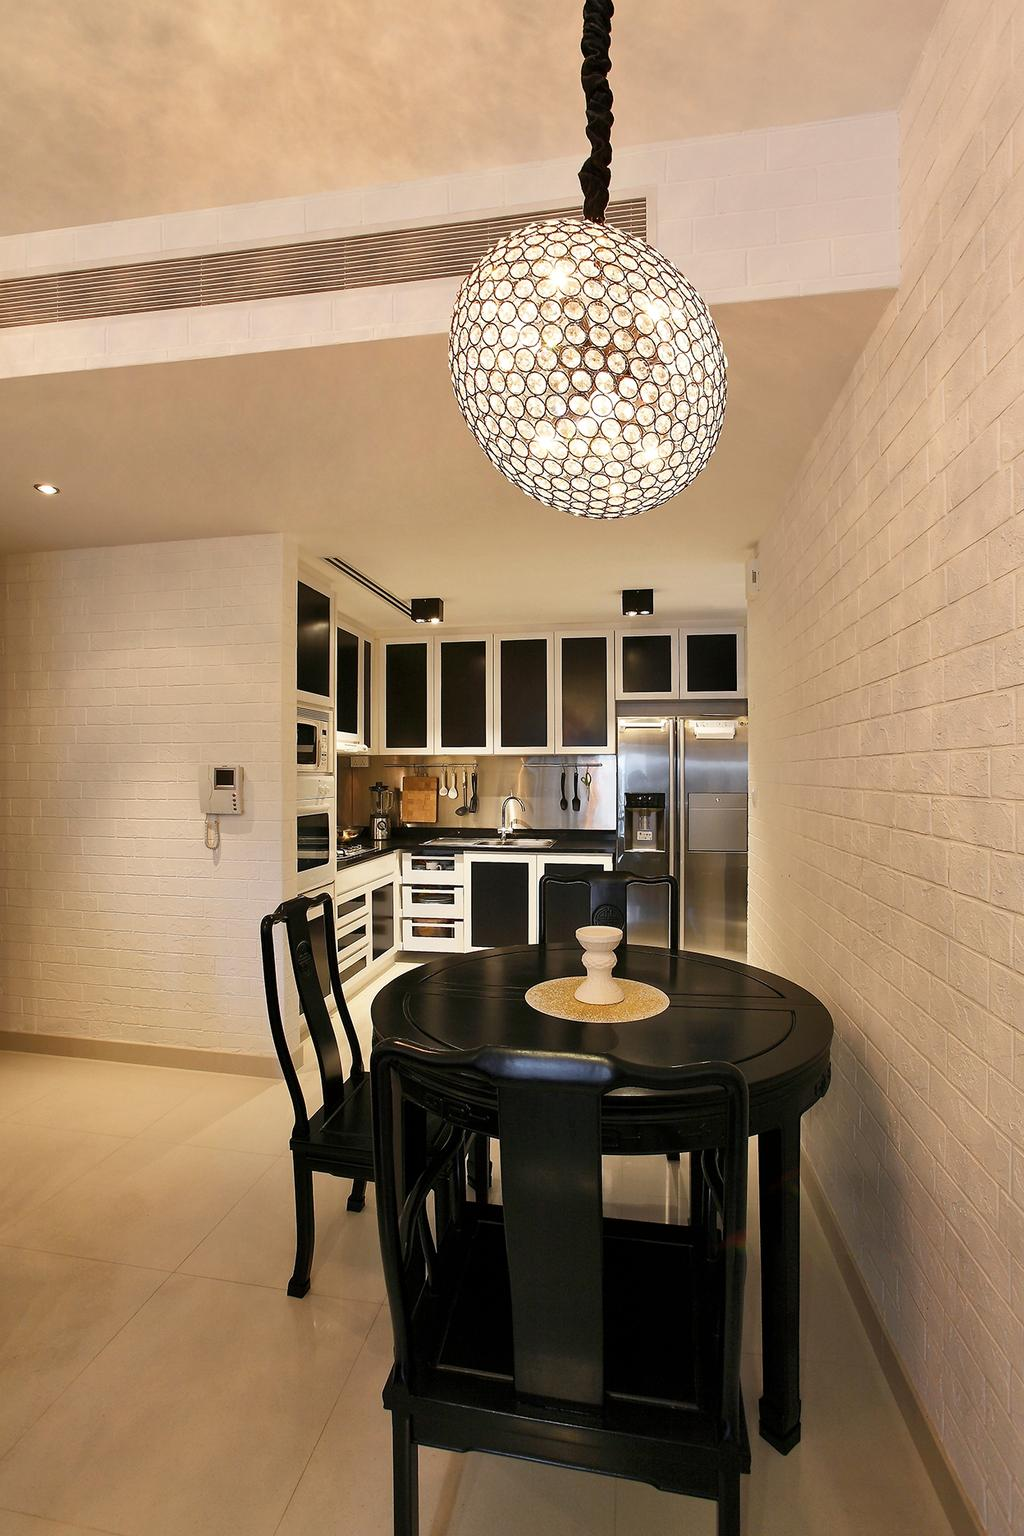 Traditional, Condo, Dining Room, Visioncrest (Oxley Rise), Interior Designer, Corazon Interior, Pendant Lights, Disco Ball, Disco Pendant Lights, White Brick Wall, Brick Wall, White Wall, Black Dining Table, Black Dining Chair, Round Table, Monochrome Kitchen, Monochrome Shelves, Indoors, Interior Design, Room, Chair, Furniture, Kitchen